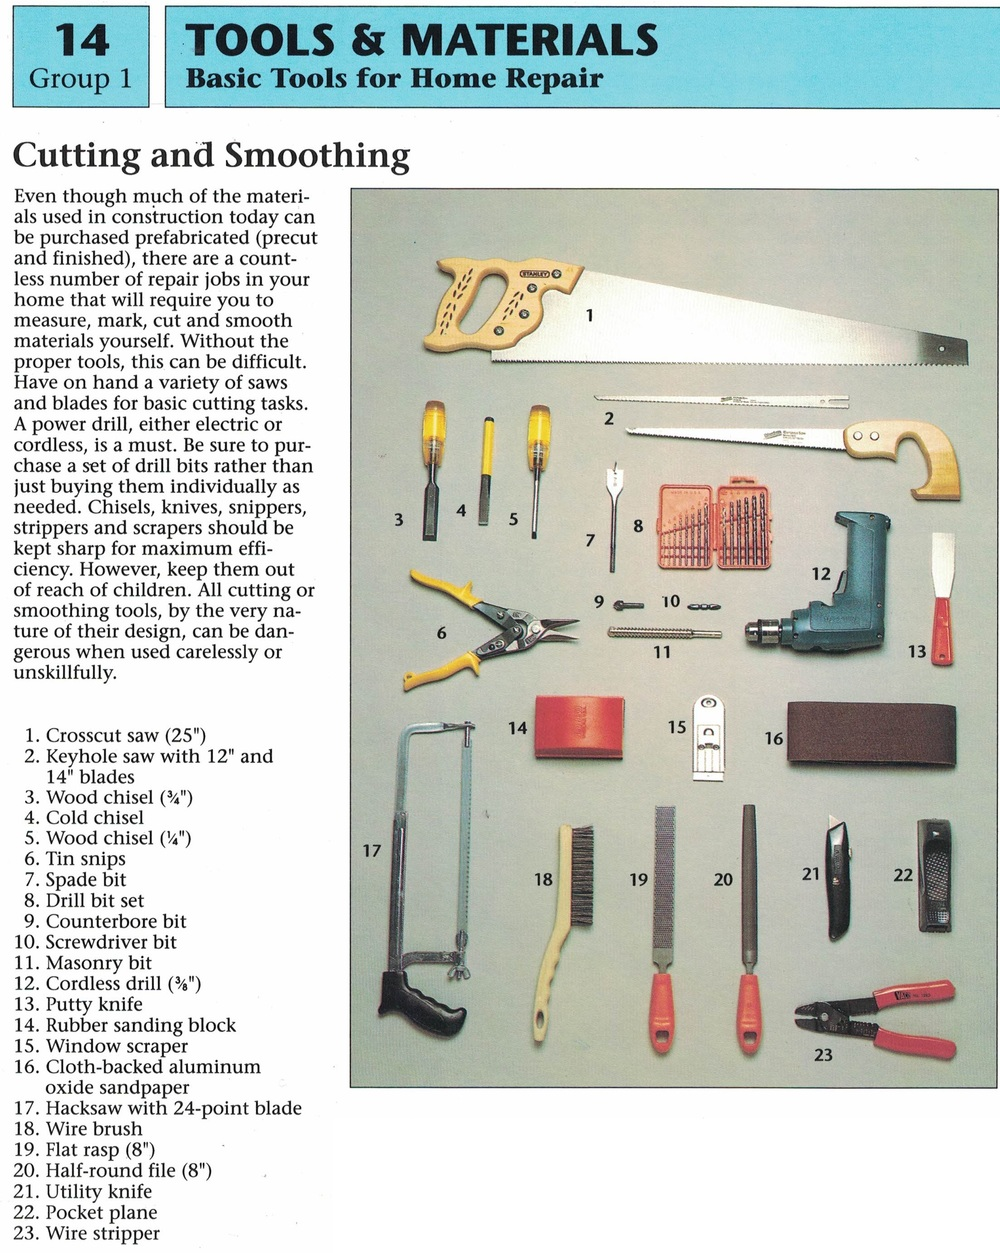 Cutting and Smoothing Tools